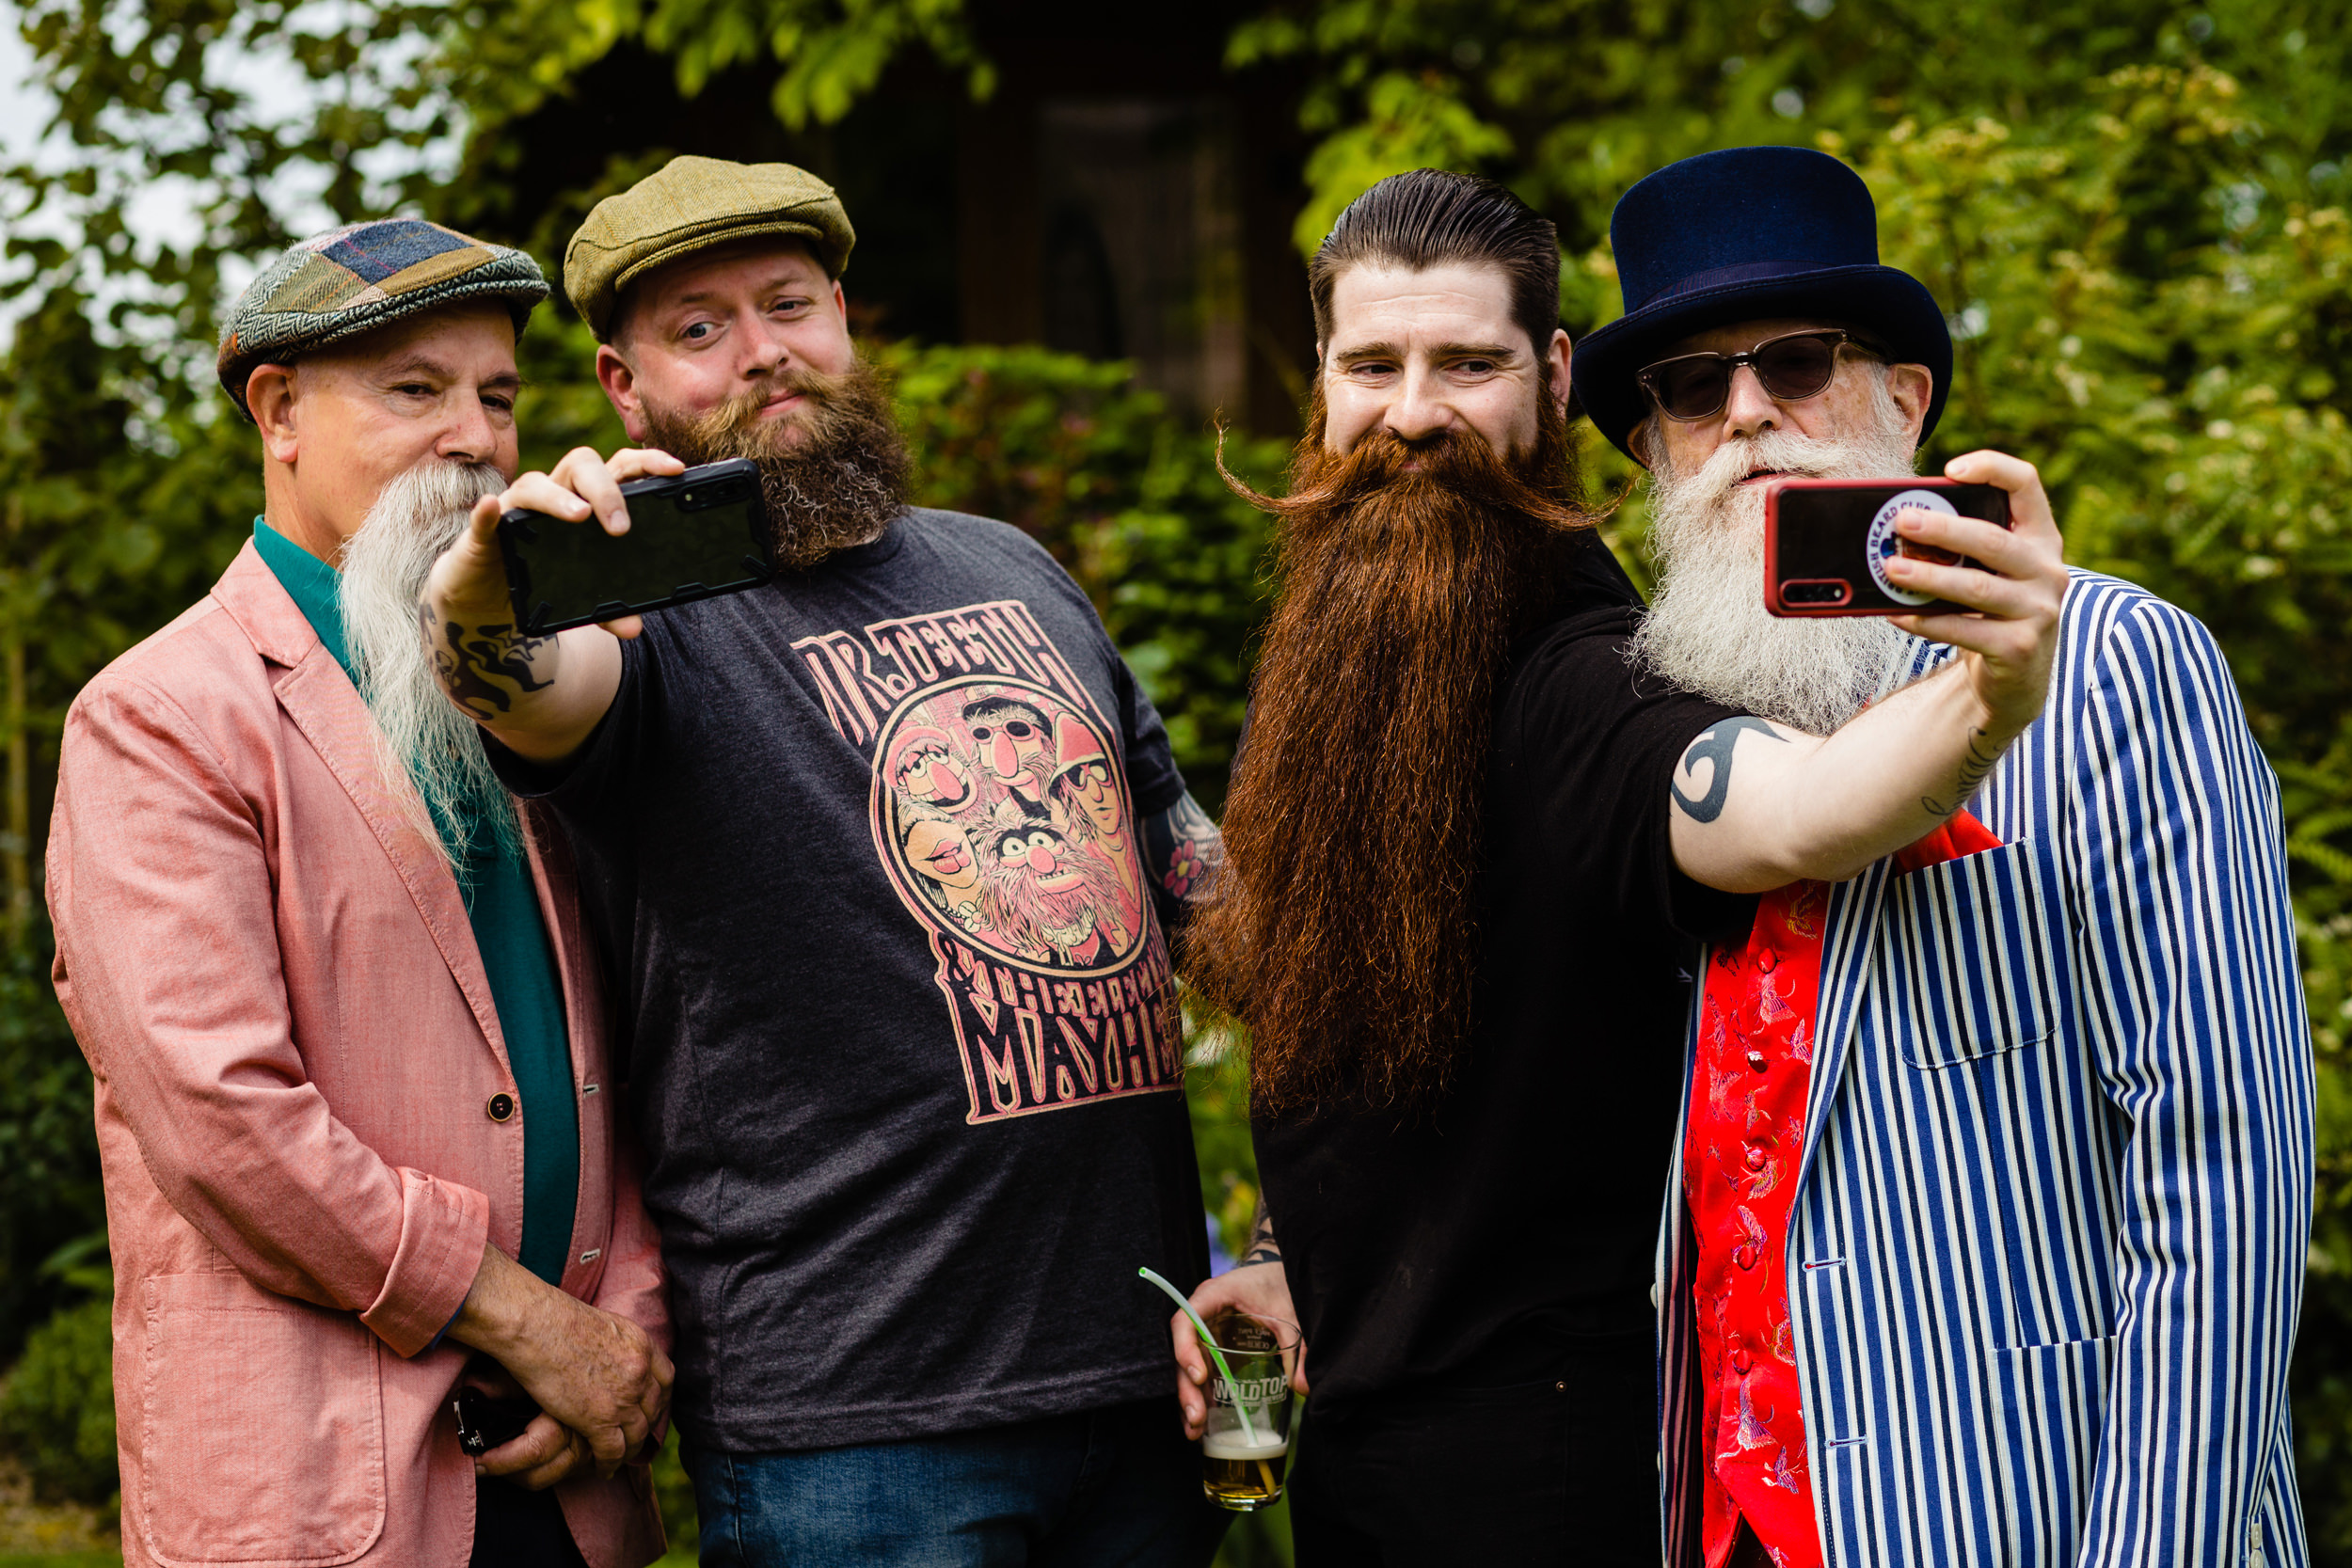 champion beard growers taking selfies.